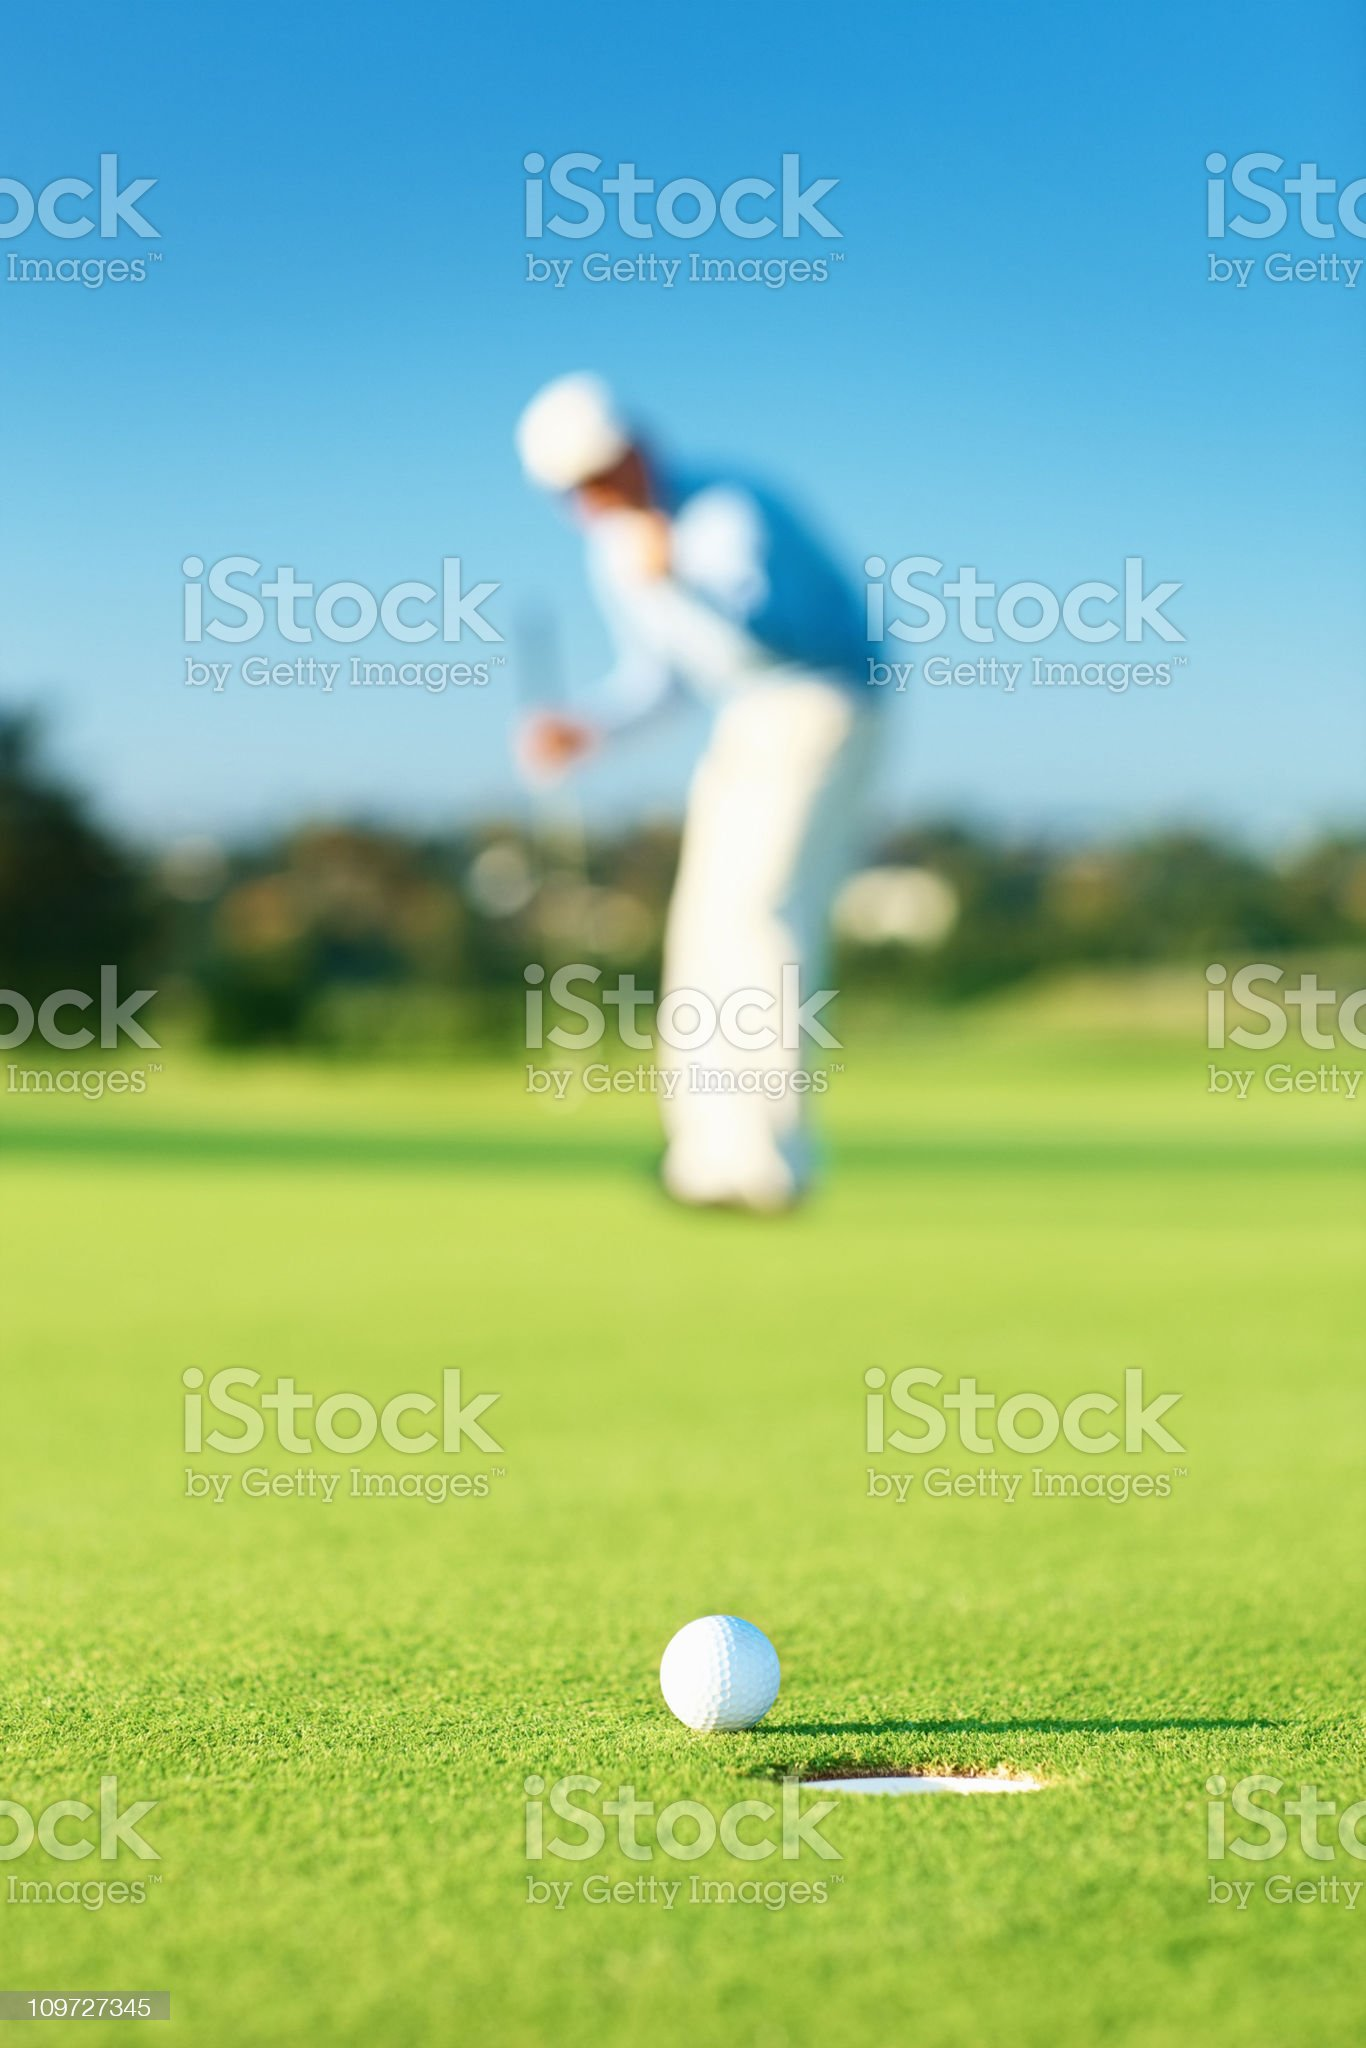 Golfer during a game at the course royalty-free stock photo